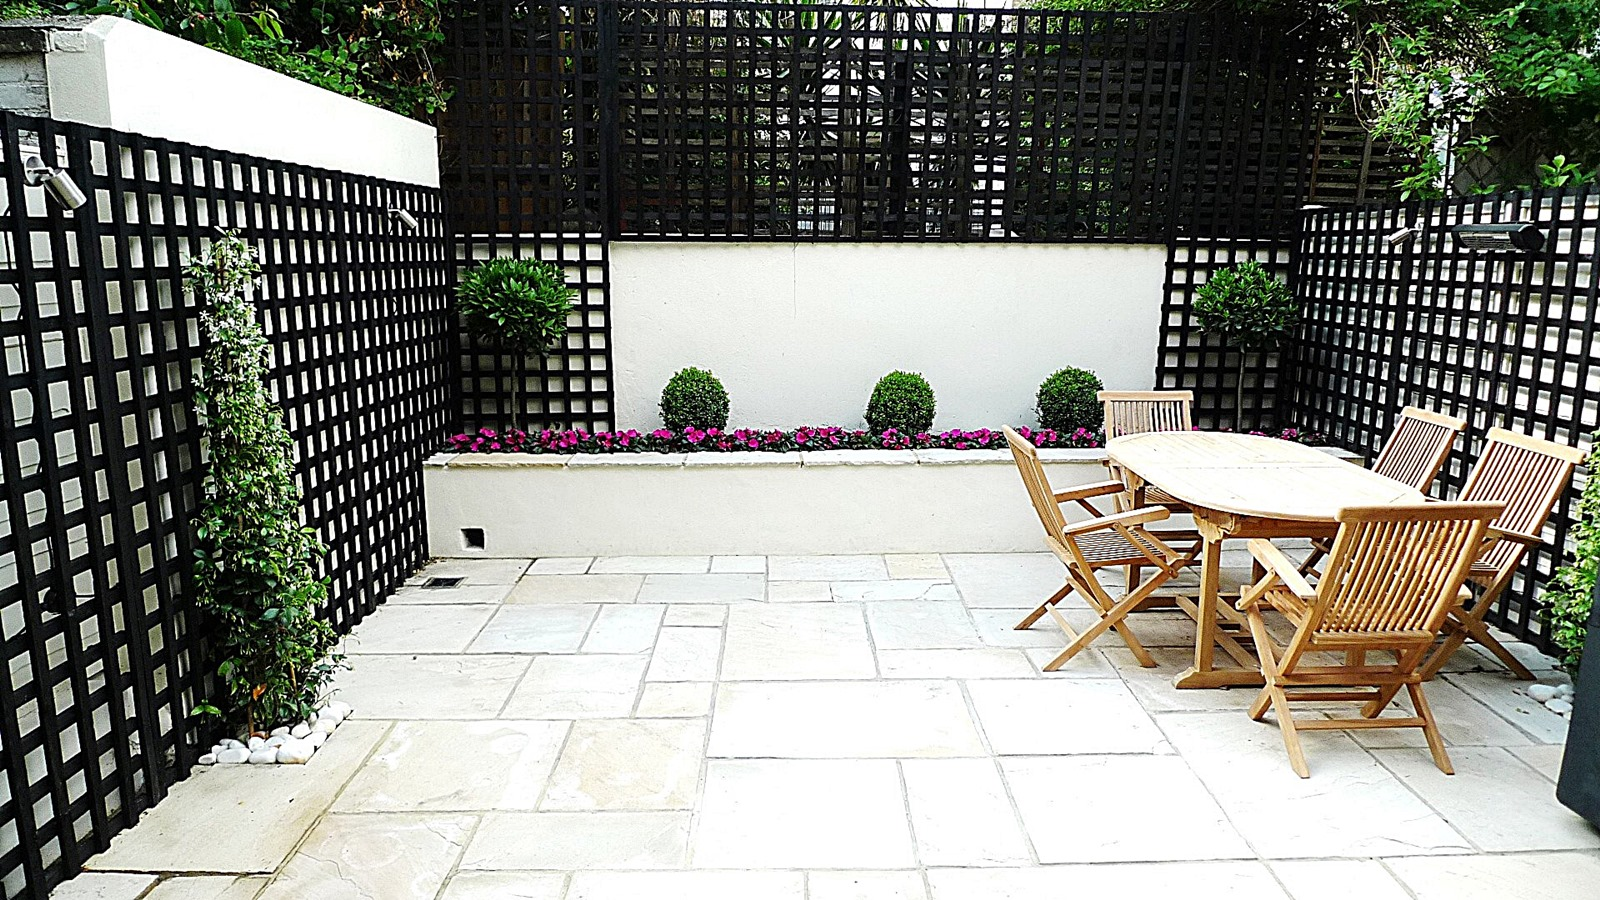 Sandstone paving patio raised beds classic modern planting ... on Black And White Backyard Decor  id=80763